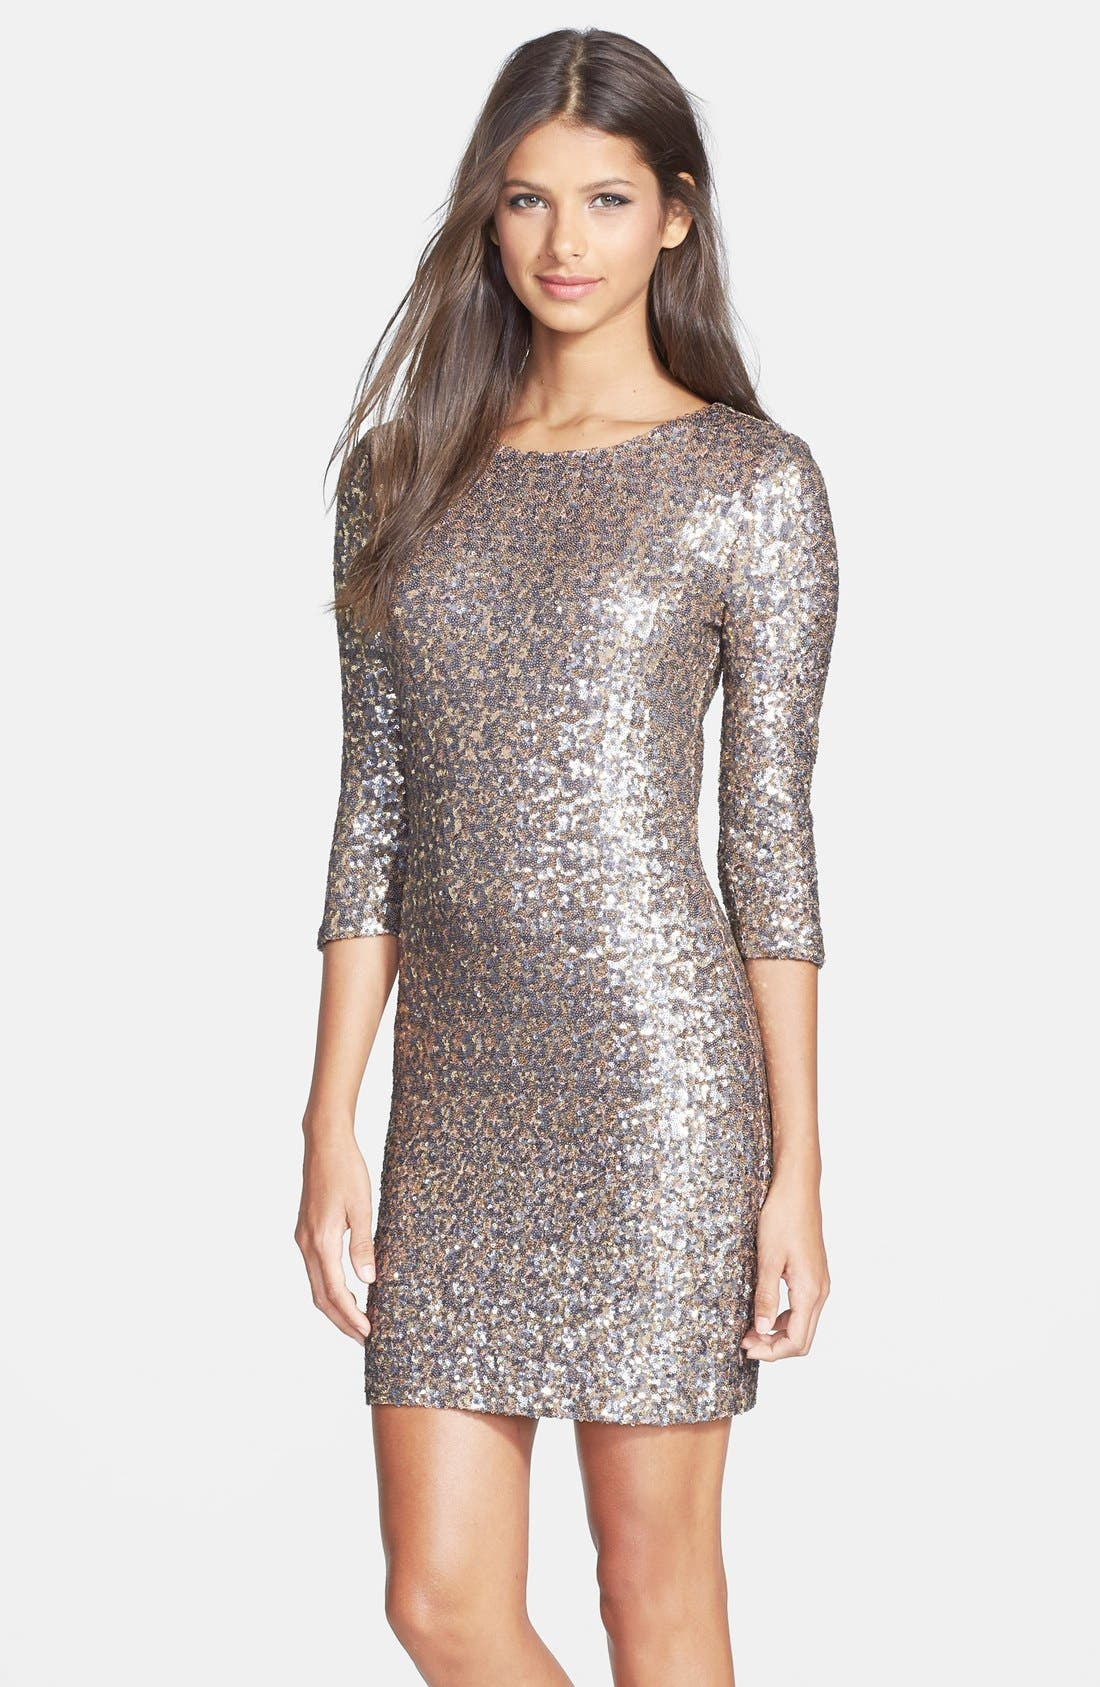 Alternate Image 1 Selected - BB Dakota 'Valet' Sequin Body-Con Dress